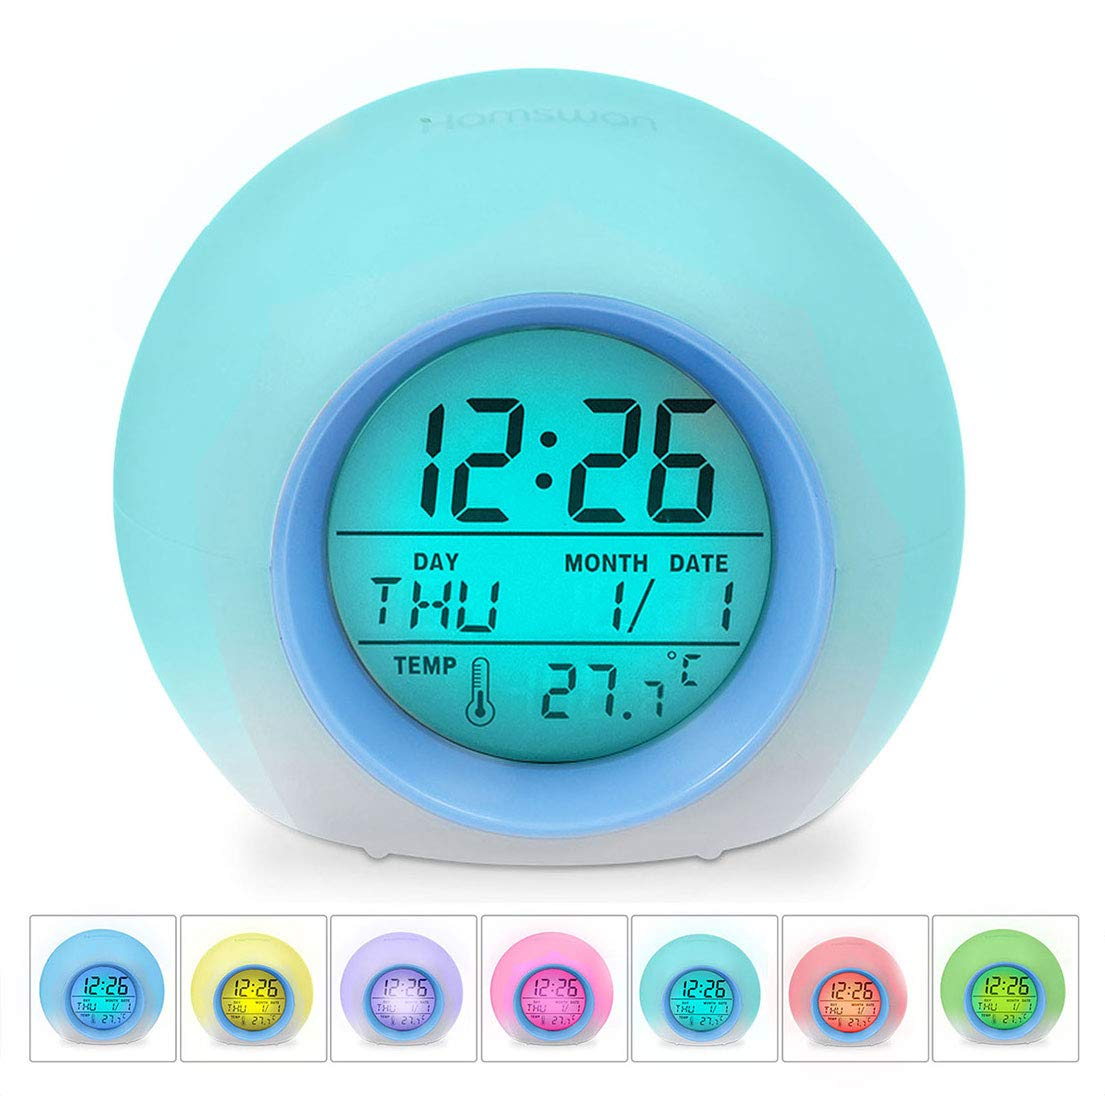 Alarm Clocks, HAMSWAN Digital Alarm Clock 7 Colors Changing Nature Sounds One Tap Control Sleep-Friendly with Indoor Temperature Display for Kids, Children, Working Parents, Students etc (Green) JL-C018-Green-UK